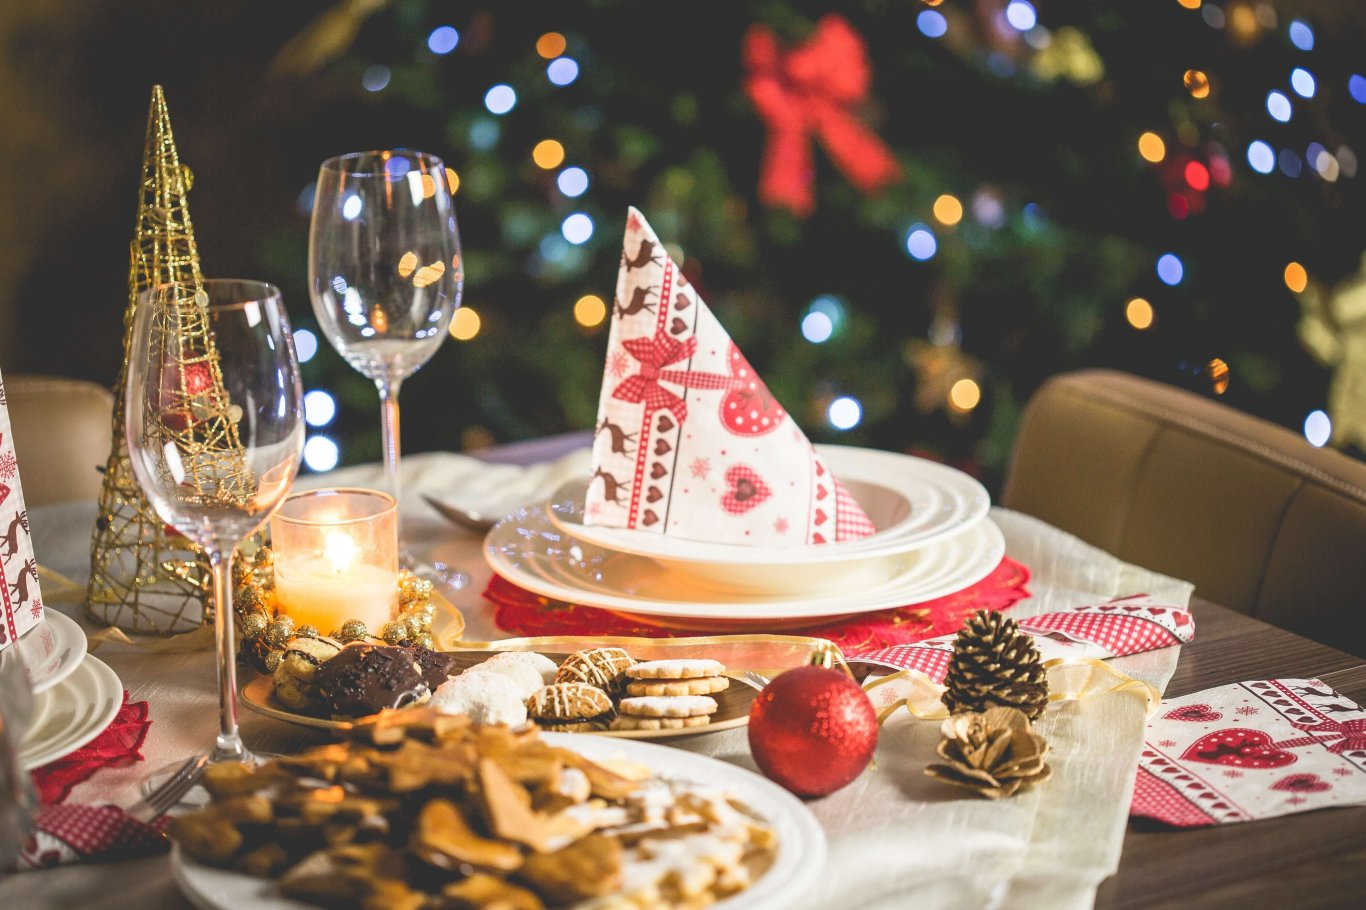 A Christmas themed table with cookies and decorations